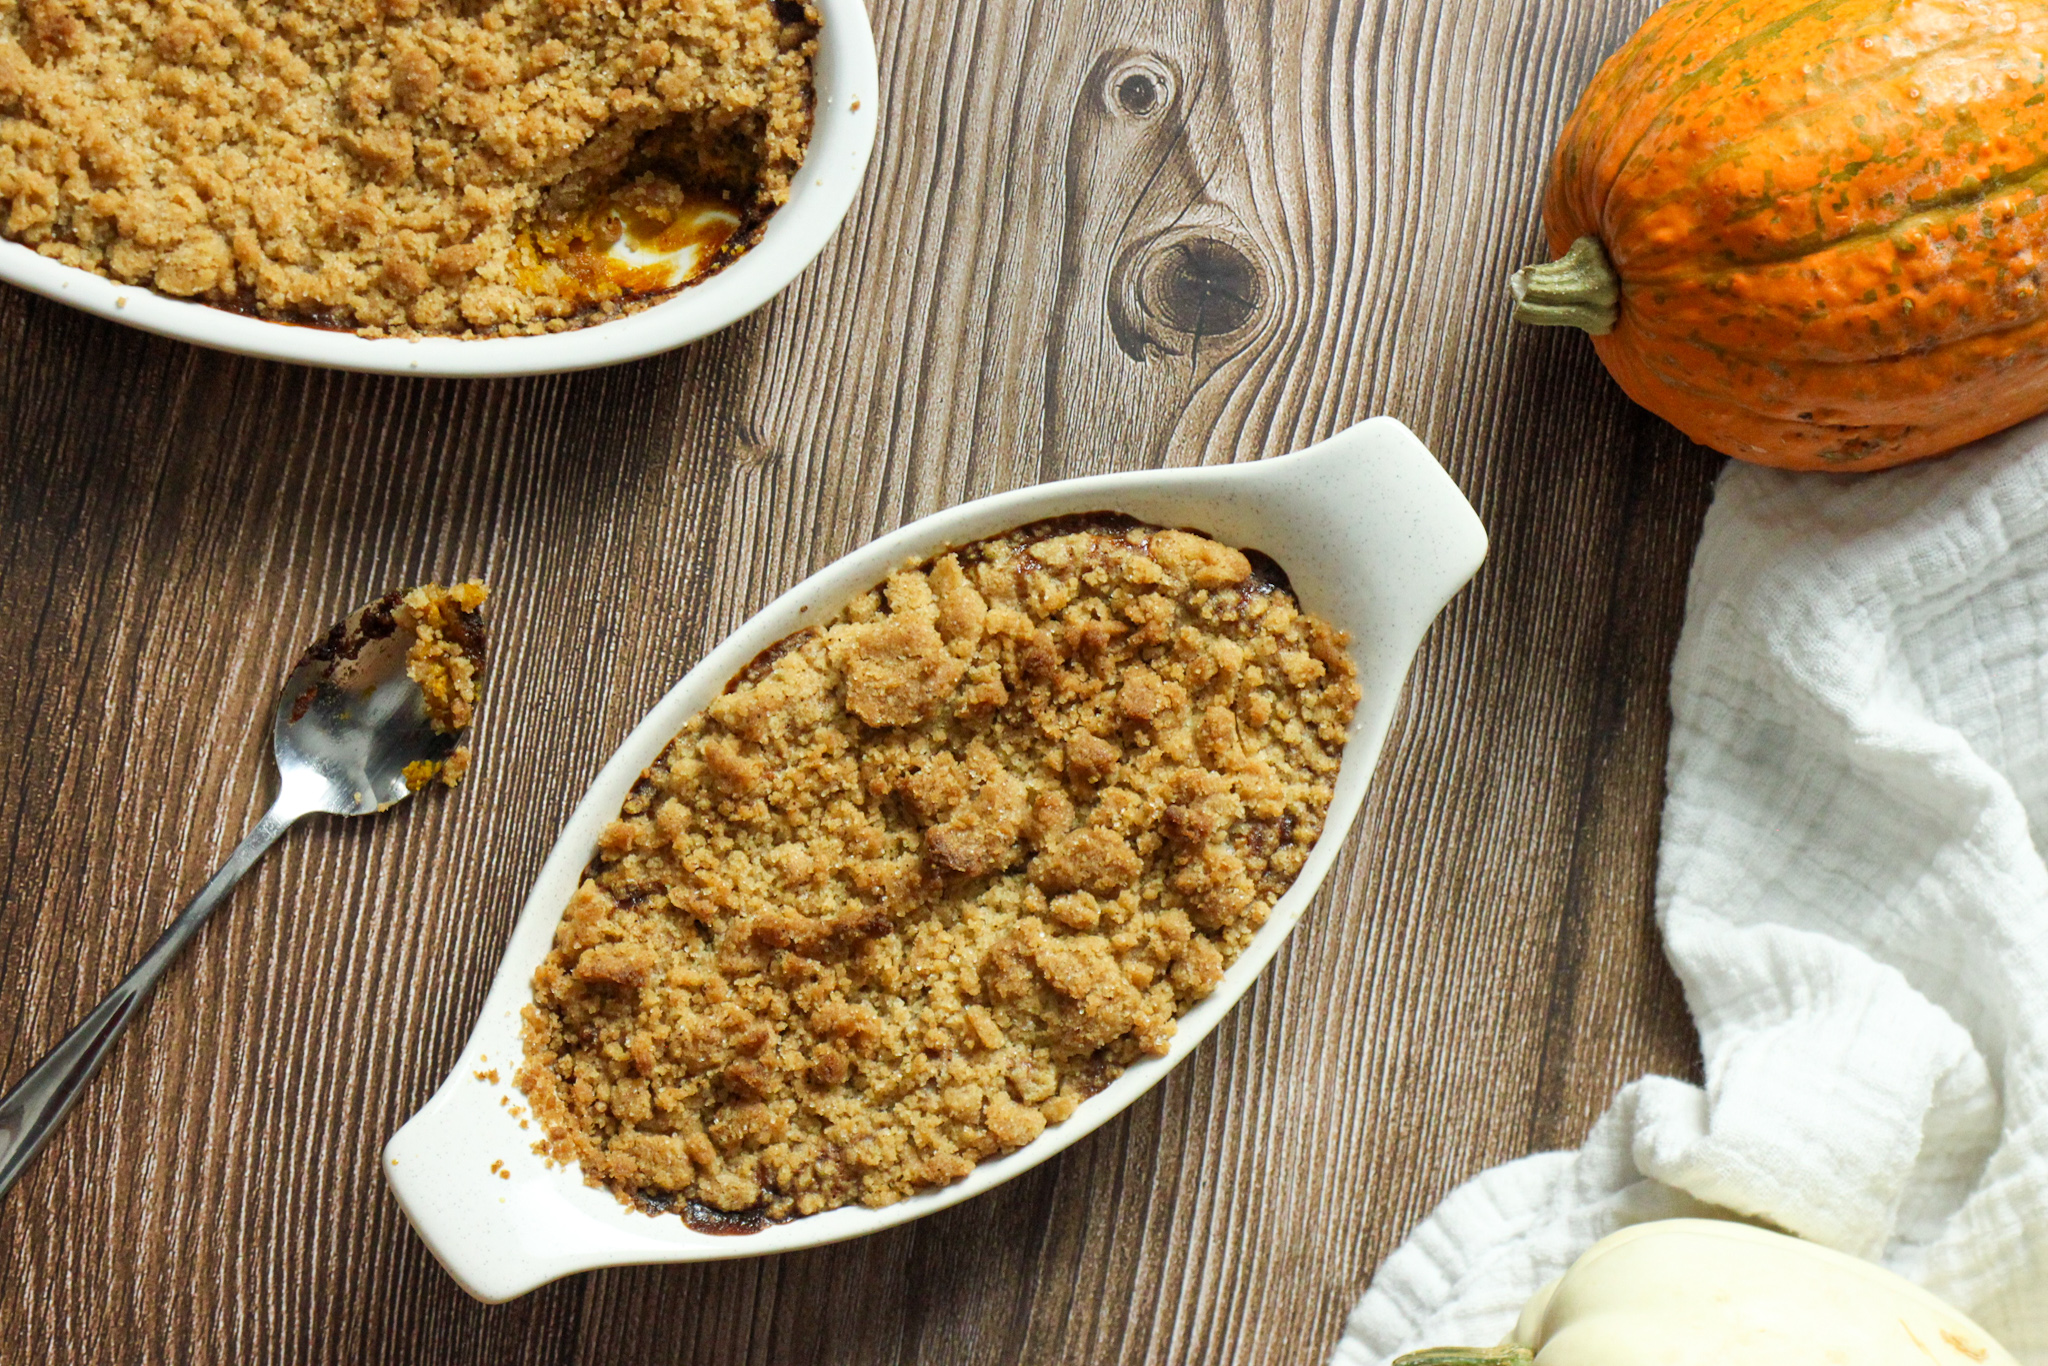 How to Make Pumpkin Pie Crisp